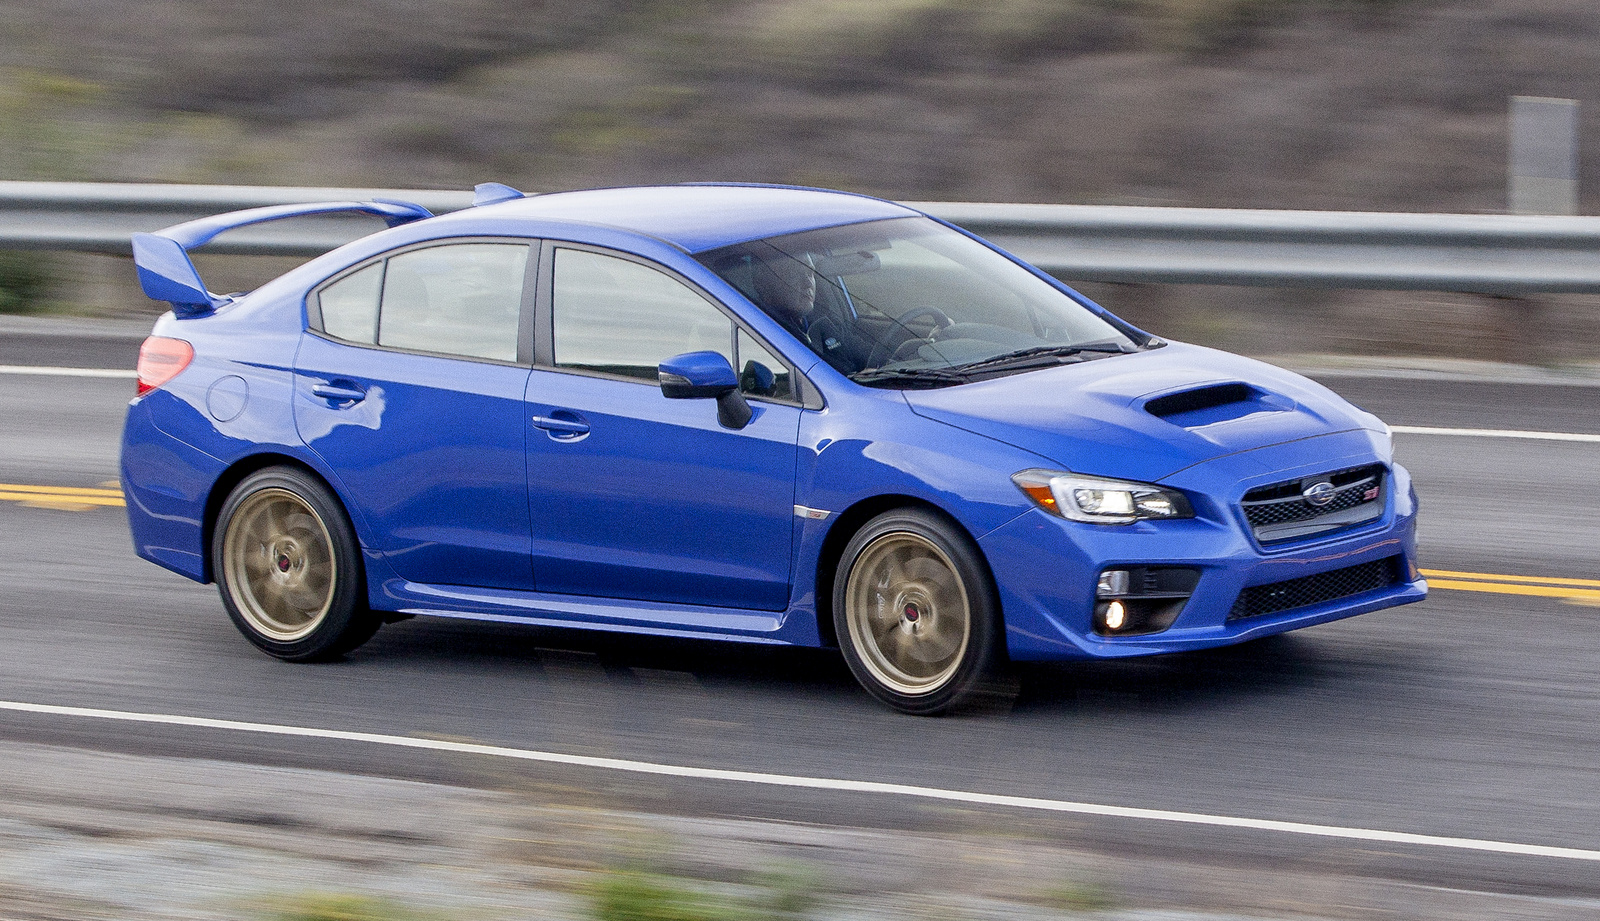 Home / Research / Subaru / Impreza WRX STi / 2015